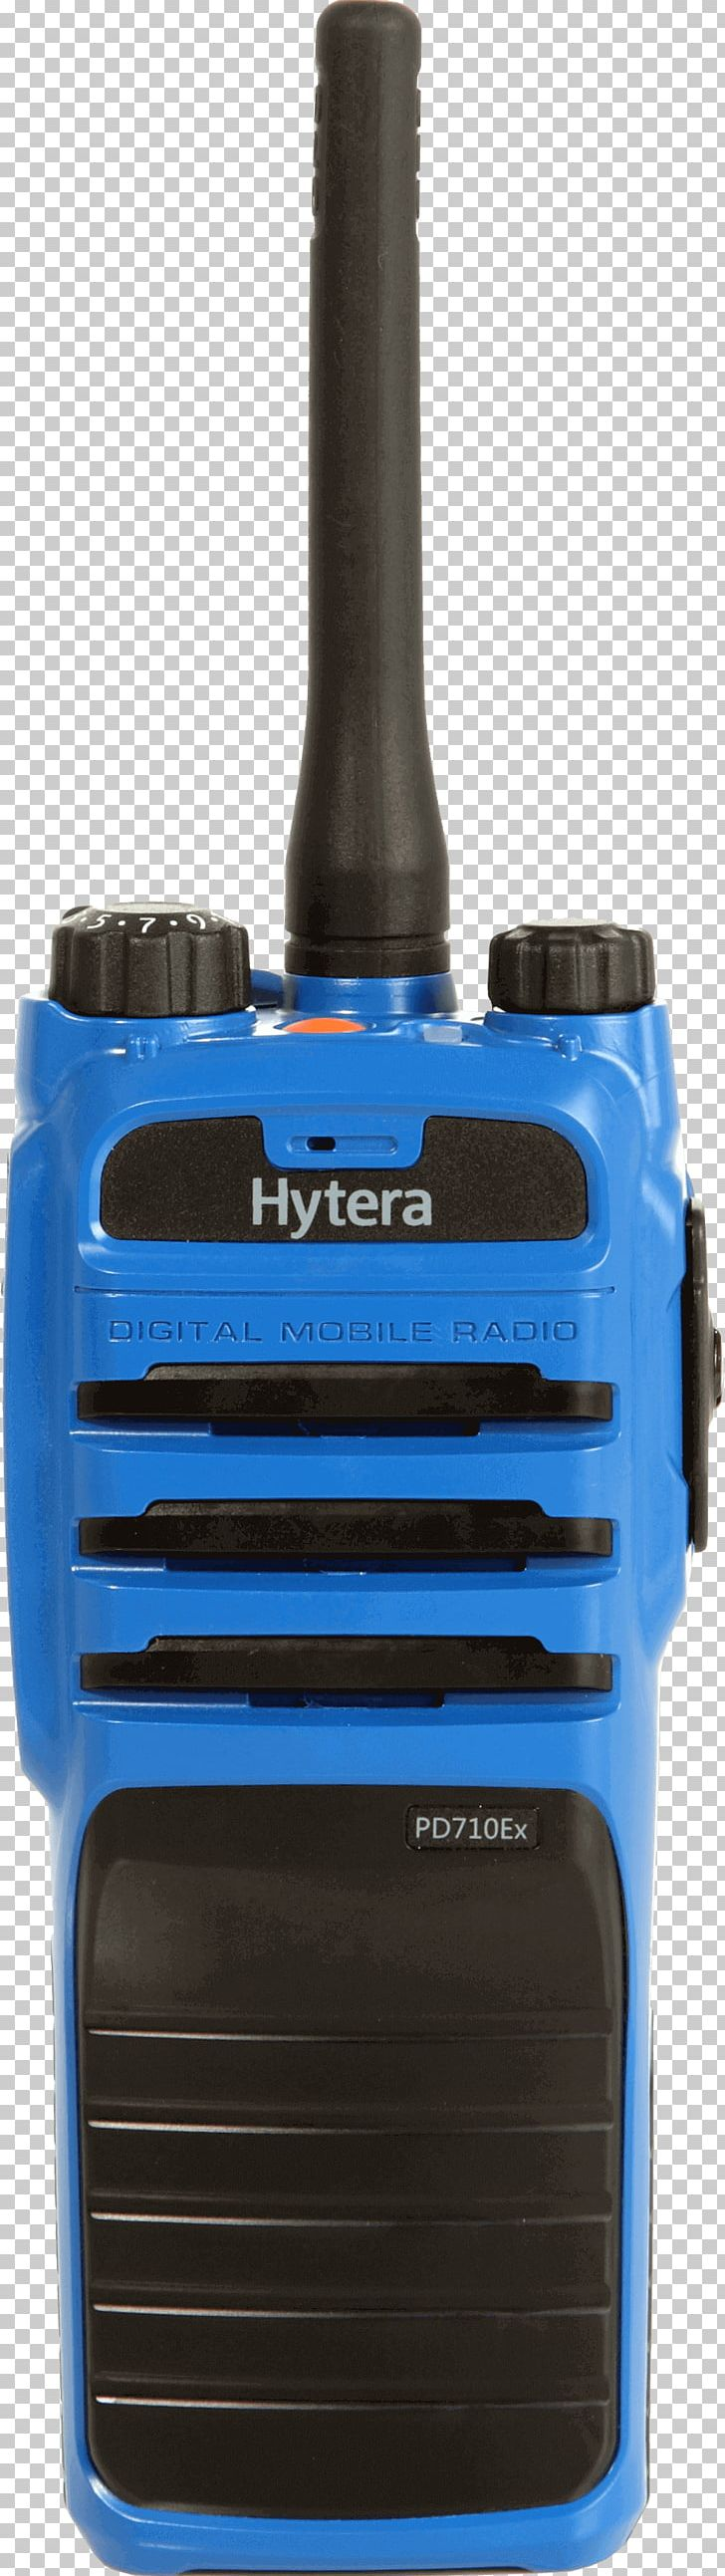 Walkie-talkie ATEX Directive Hytera Two-way Radio PNG, Clipart, Aerials, Atex Directive, Communication, Cylinder, Digital Mobile Radio Free PNG Download